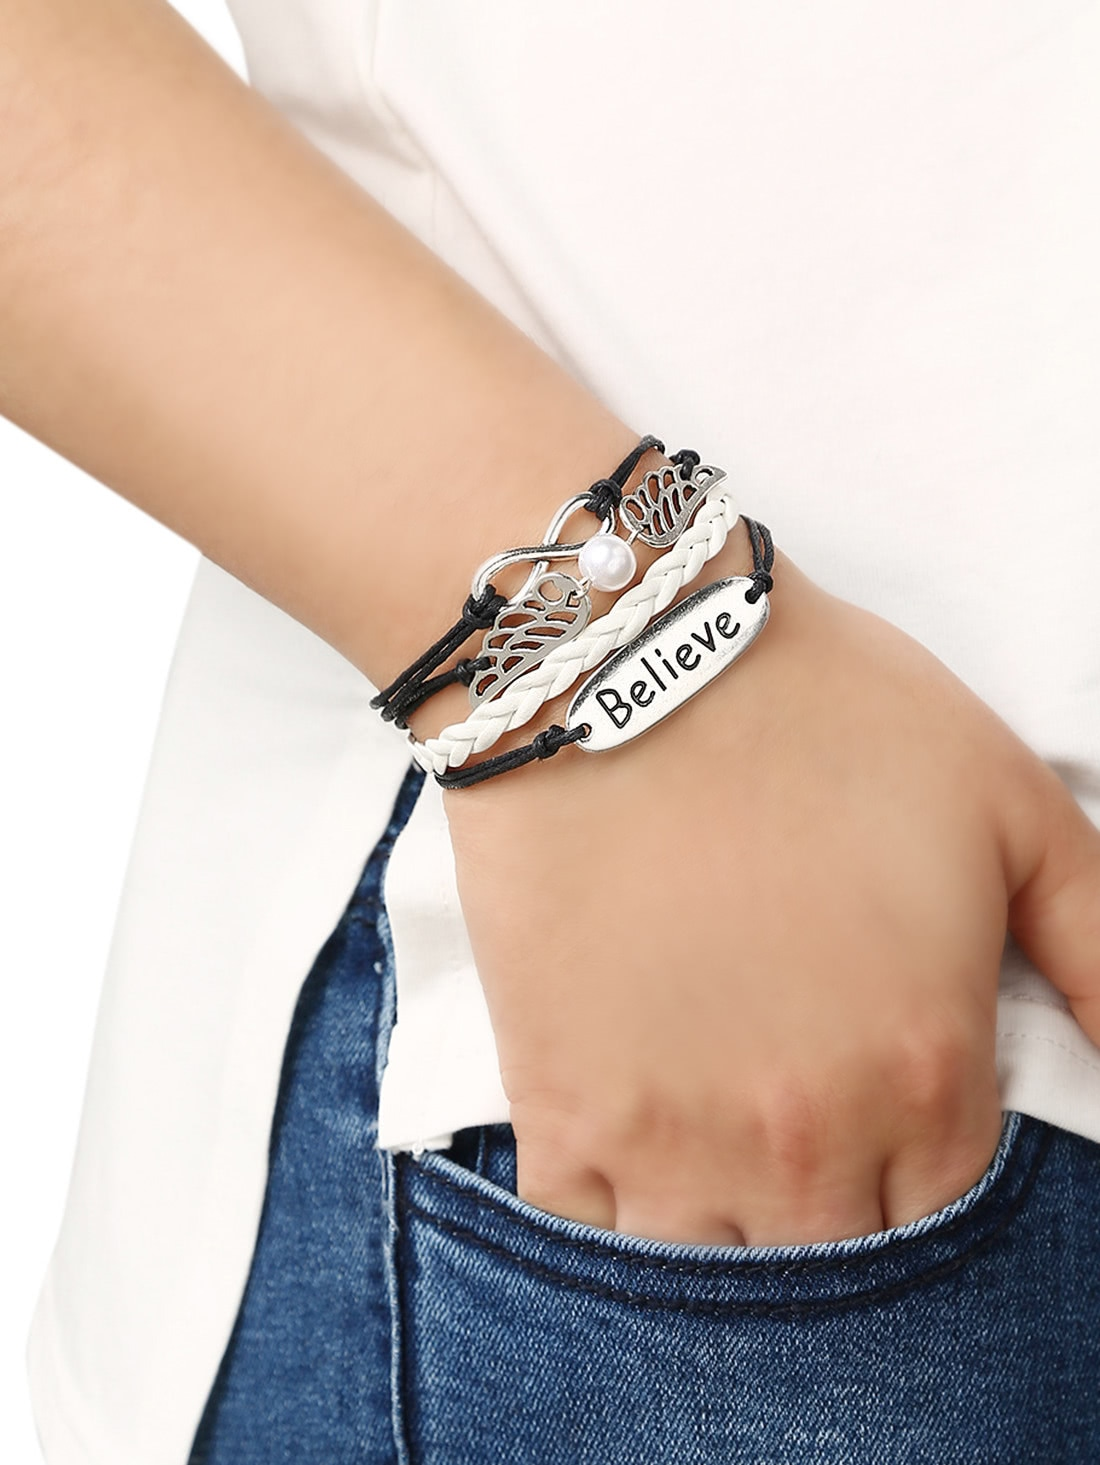 Braid Brand Wing Bracelet brown braid tree bracelet